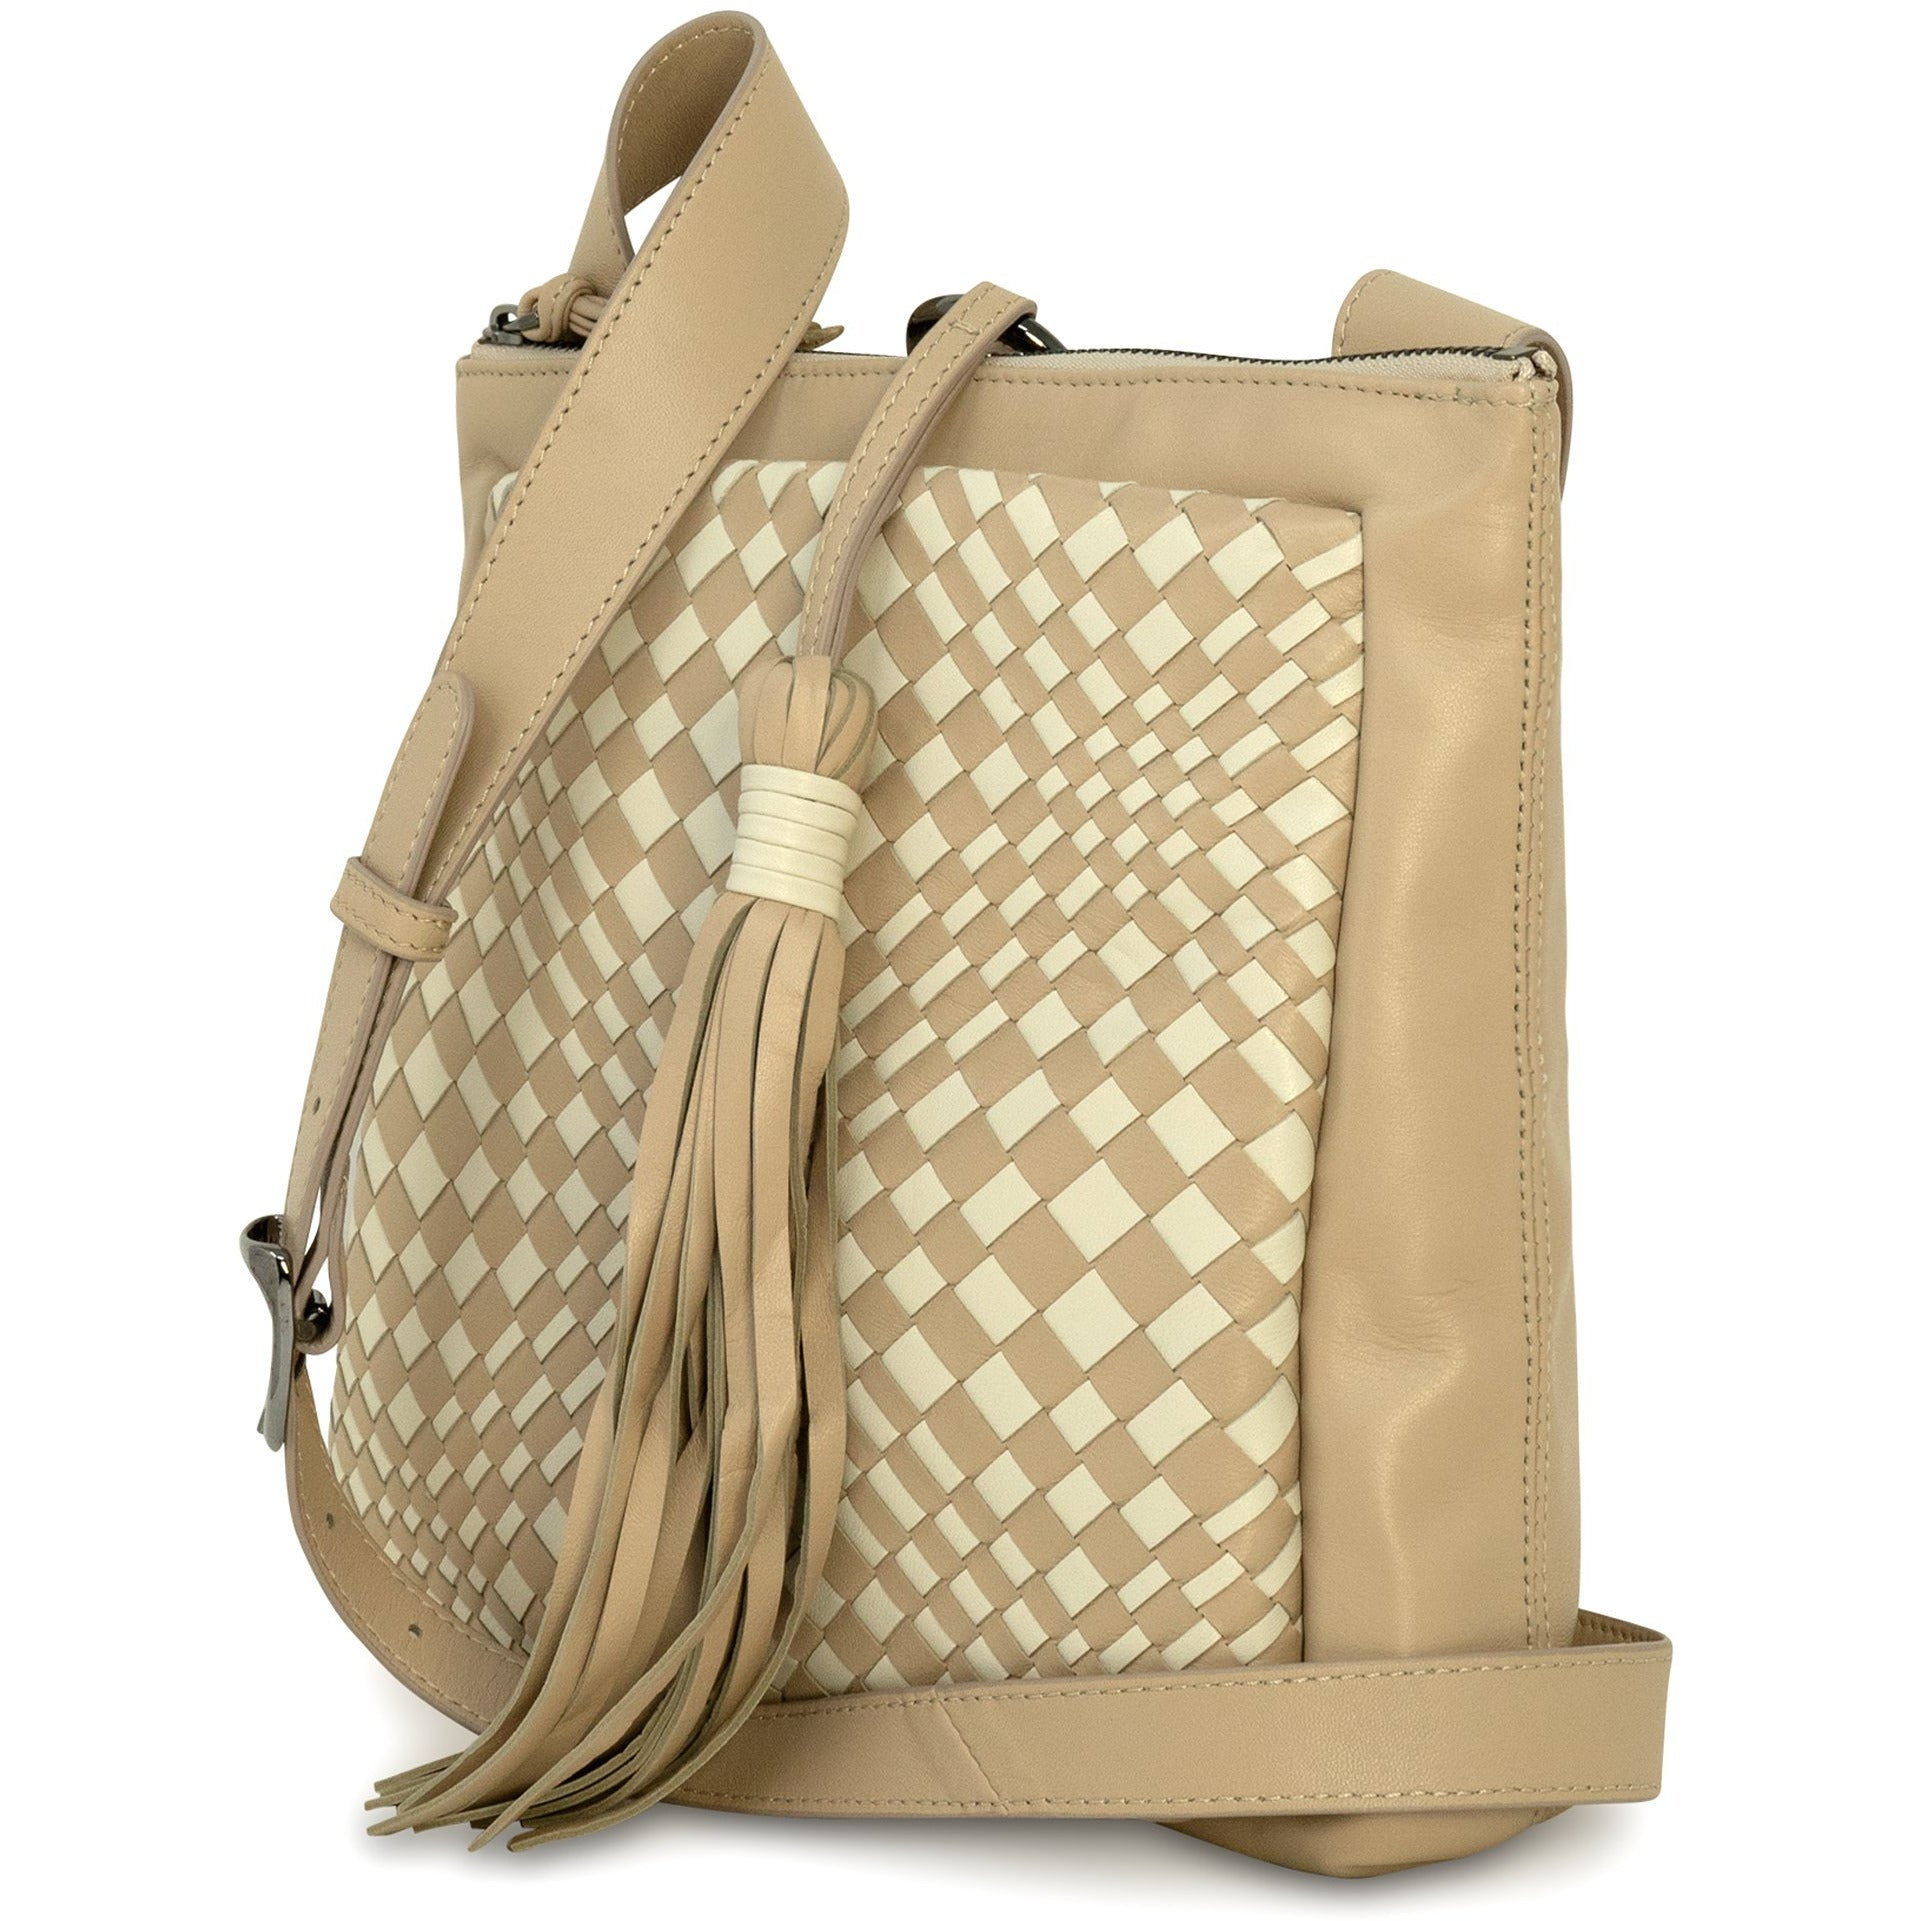 GINGER IS Crossbody Bag Intrecciato Optical Nappa Riso - Jennifer Tattanelli